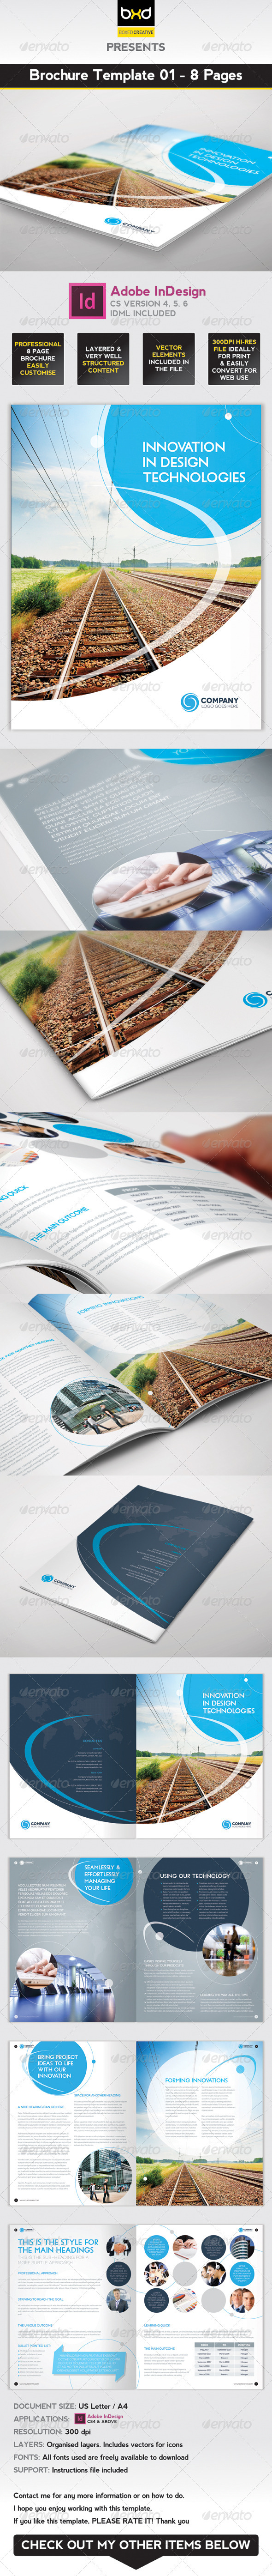 Brochure Template - InDesign 8 Page Layout 01 - Corporate Brochures